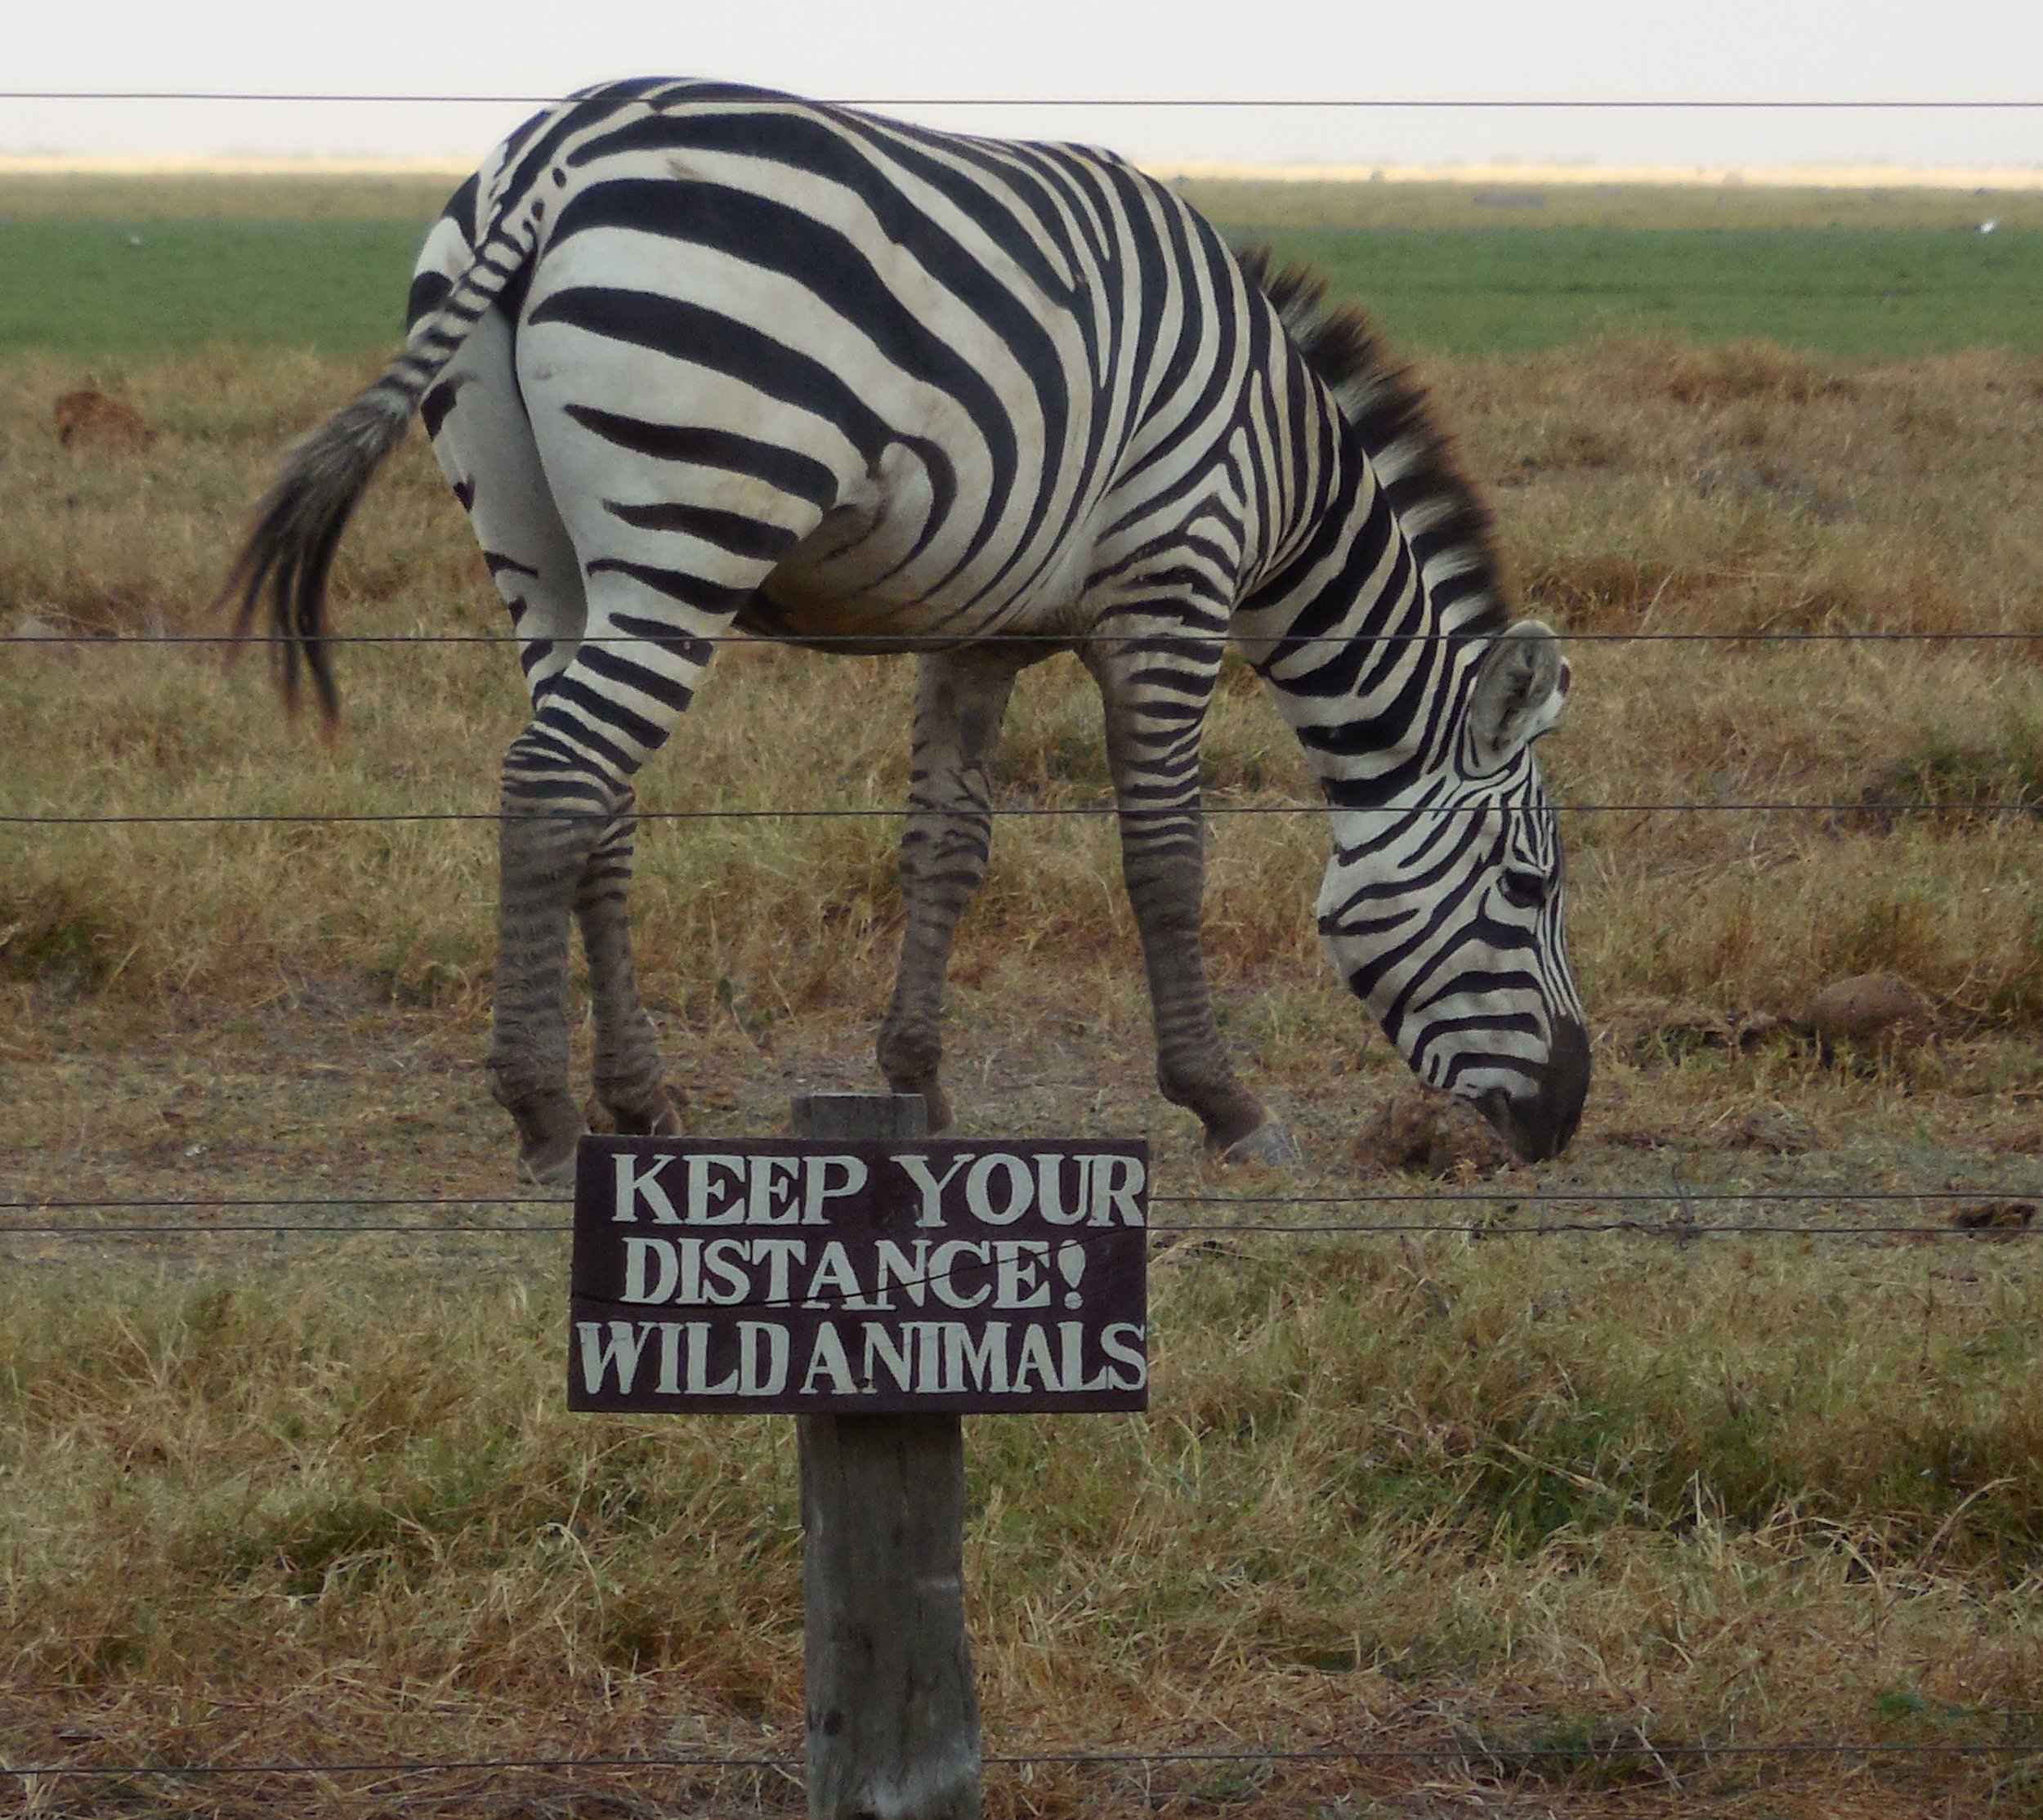 Zebra Wildlife Warning Sign ©Flyga Twiga LLC